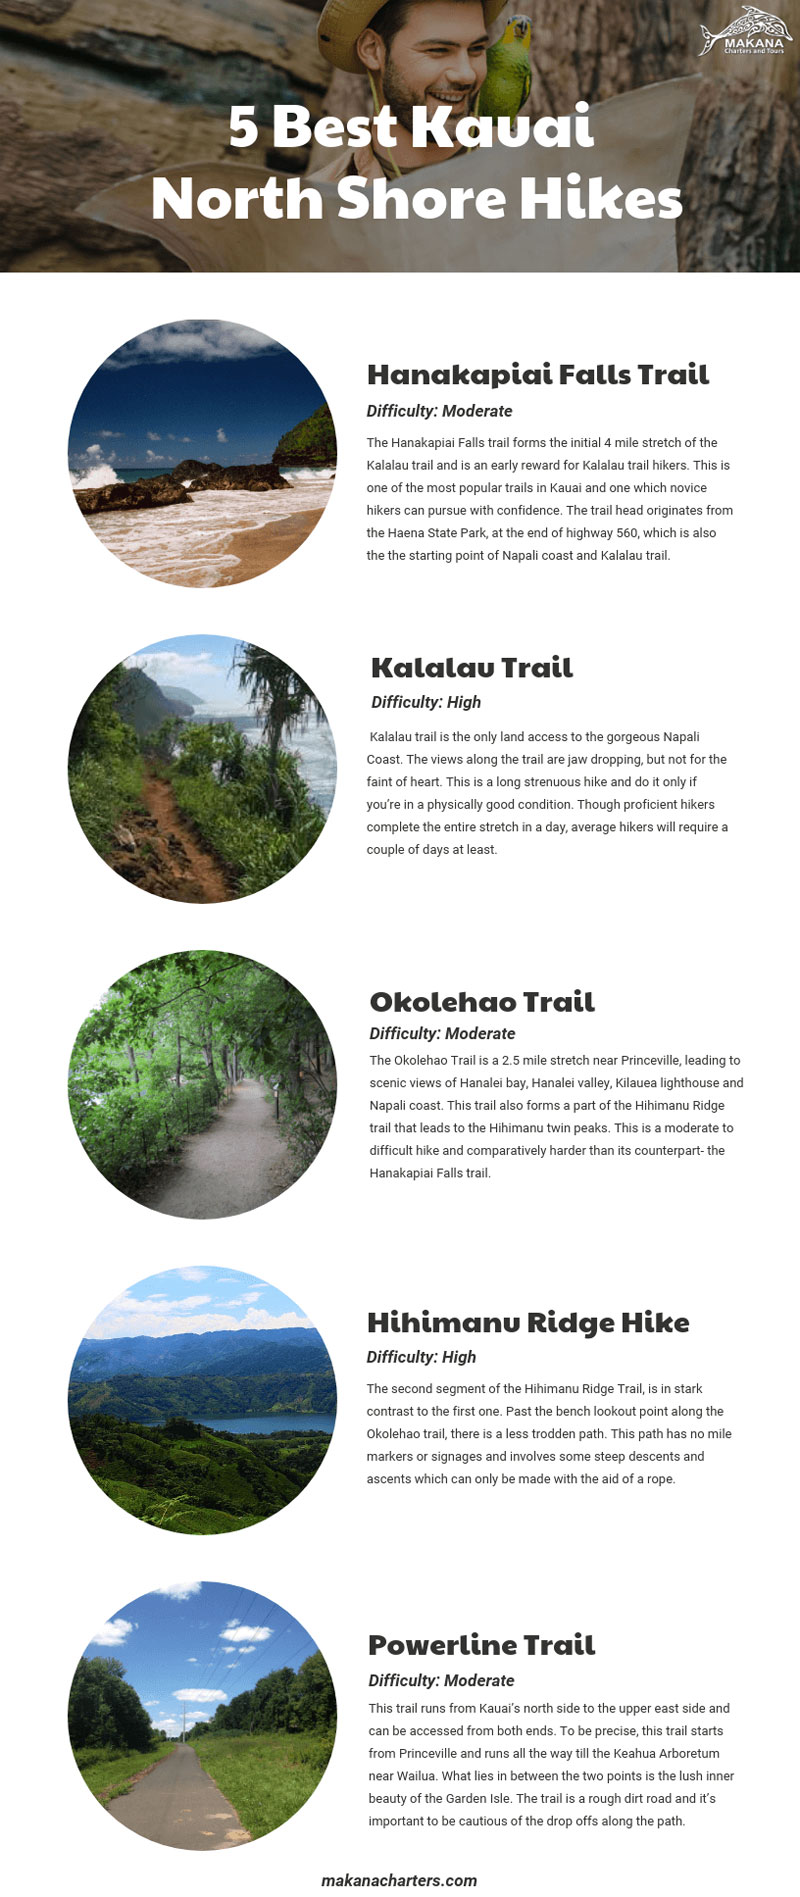 5 Best Kauai North Shore Hikes